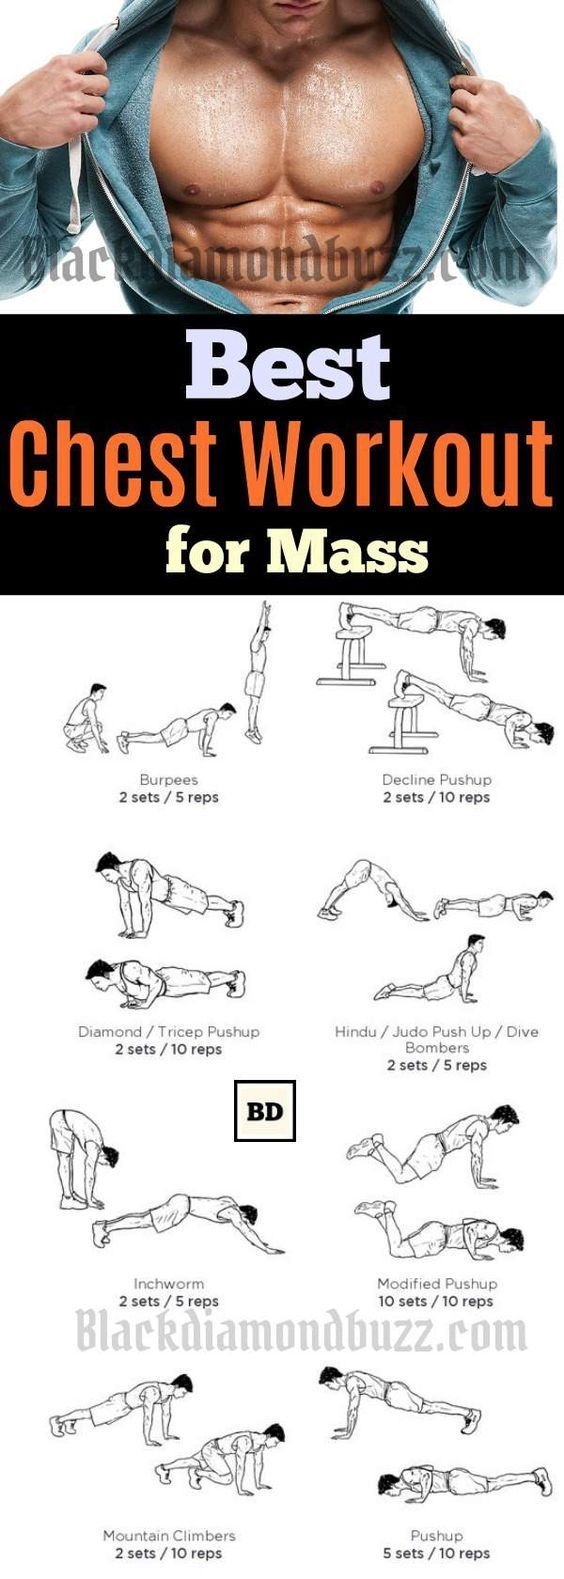 Chest Workout Routine for Mass 10 Best Chest Workout for